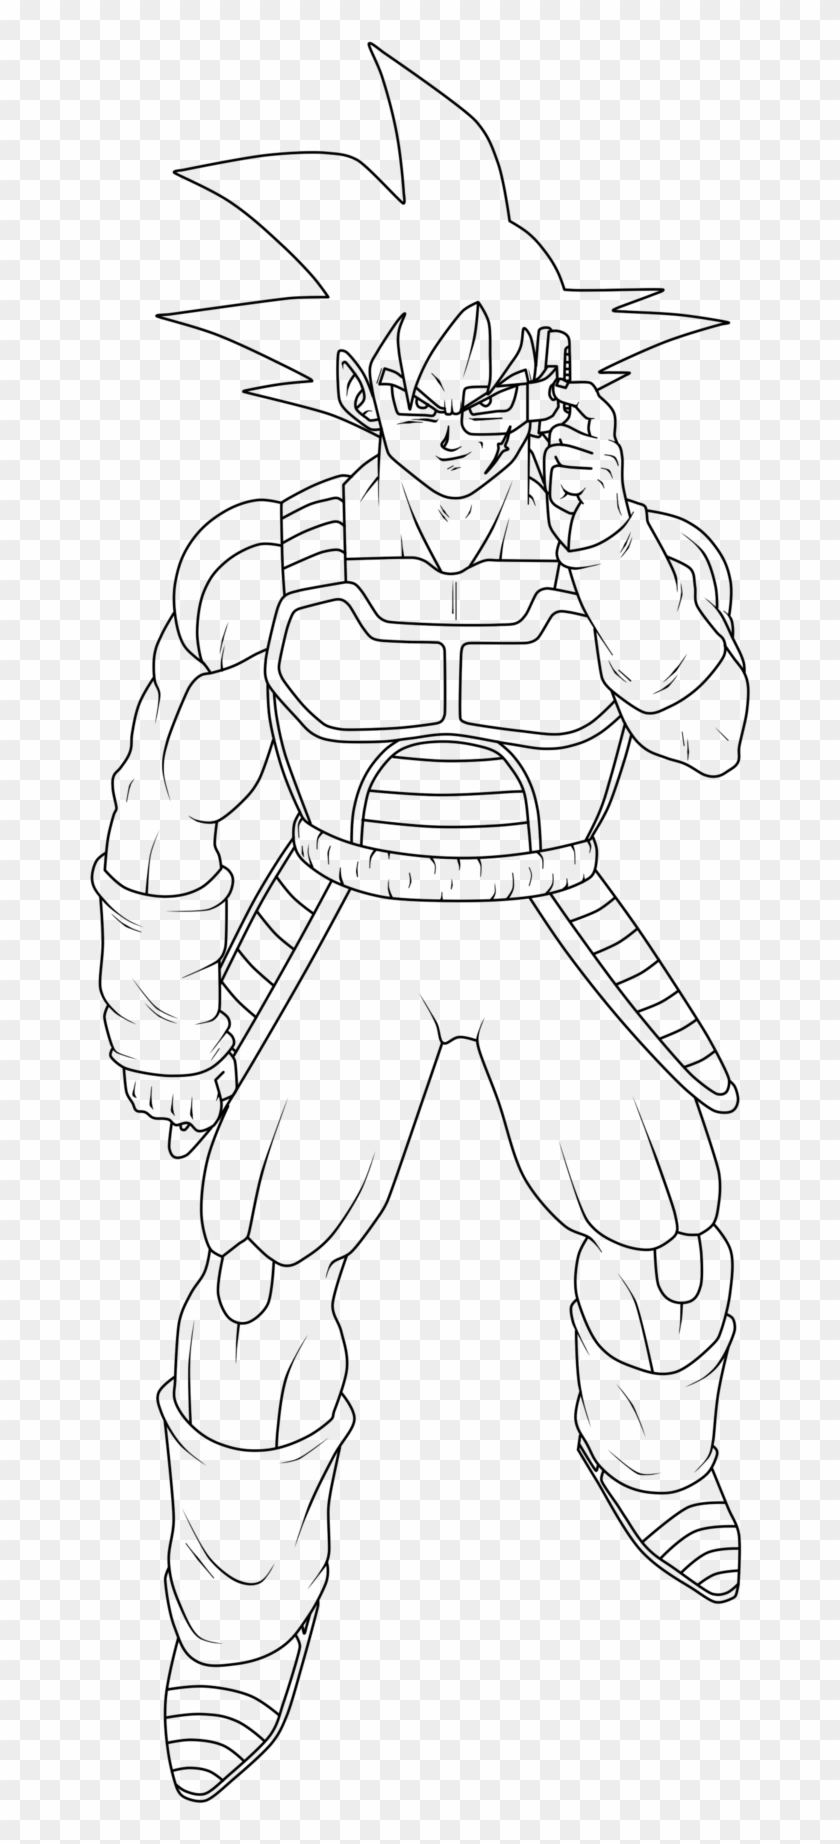 Dragon Ball Z Broly Coloring Pages With Dragon Ball - Dragon Ball ... | 1844x840